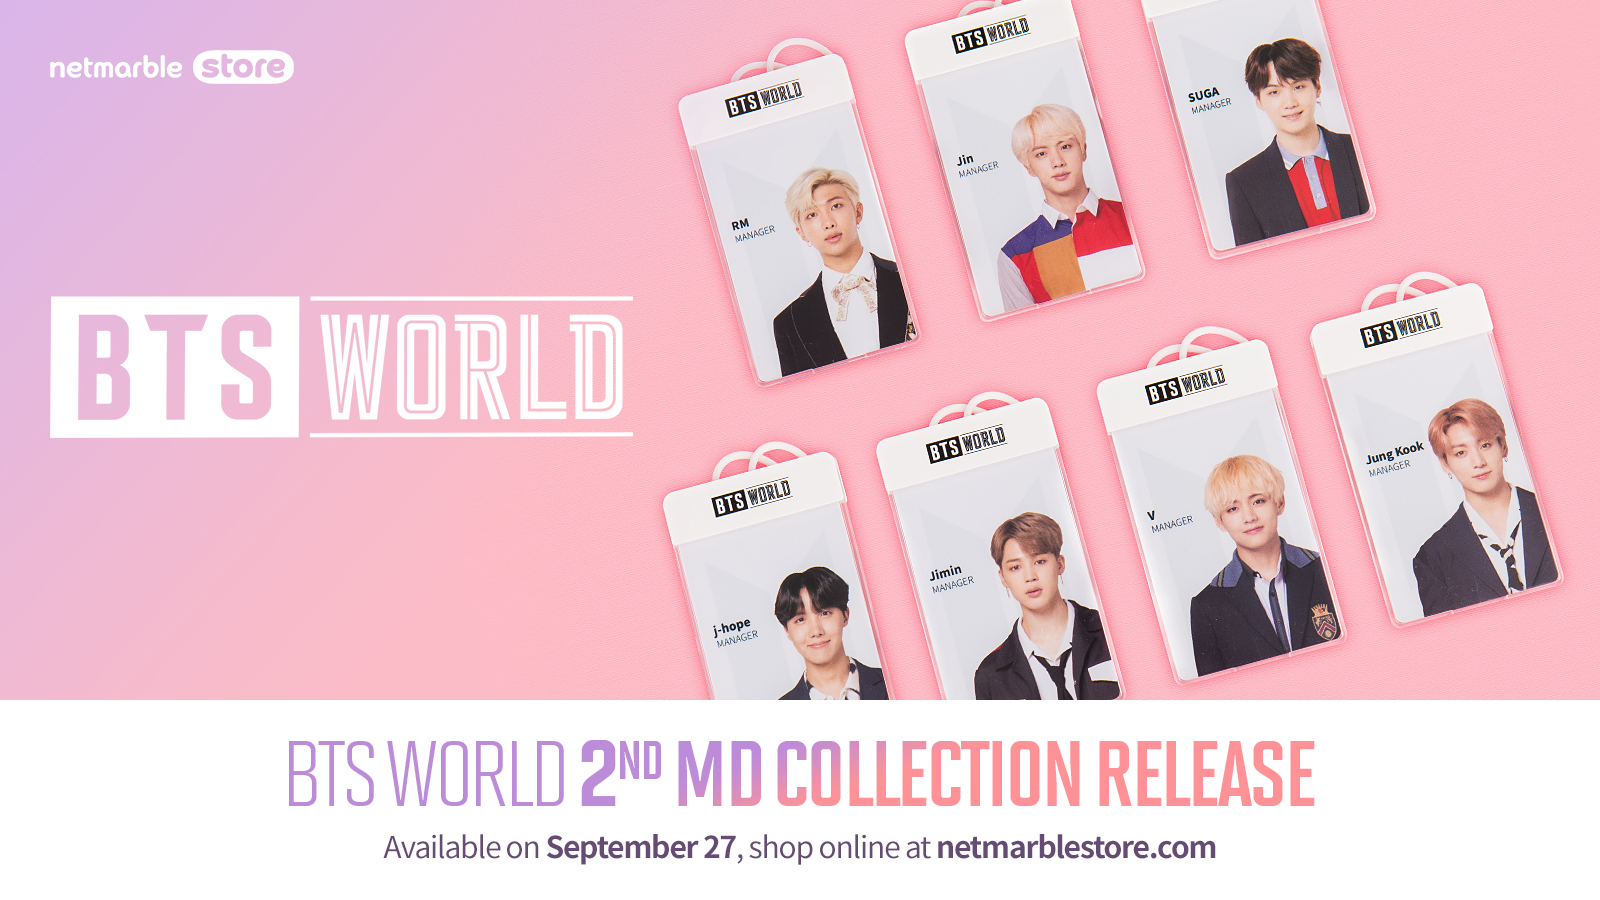 NETMARBLE RELEASES NEW BTS WORLD MERCHANDISE COLLECTION